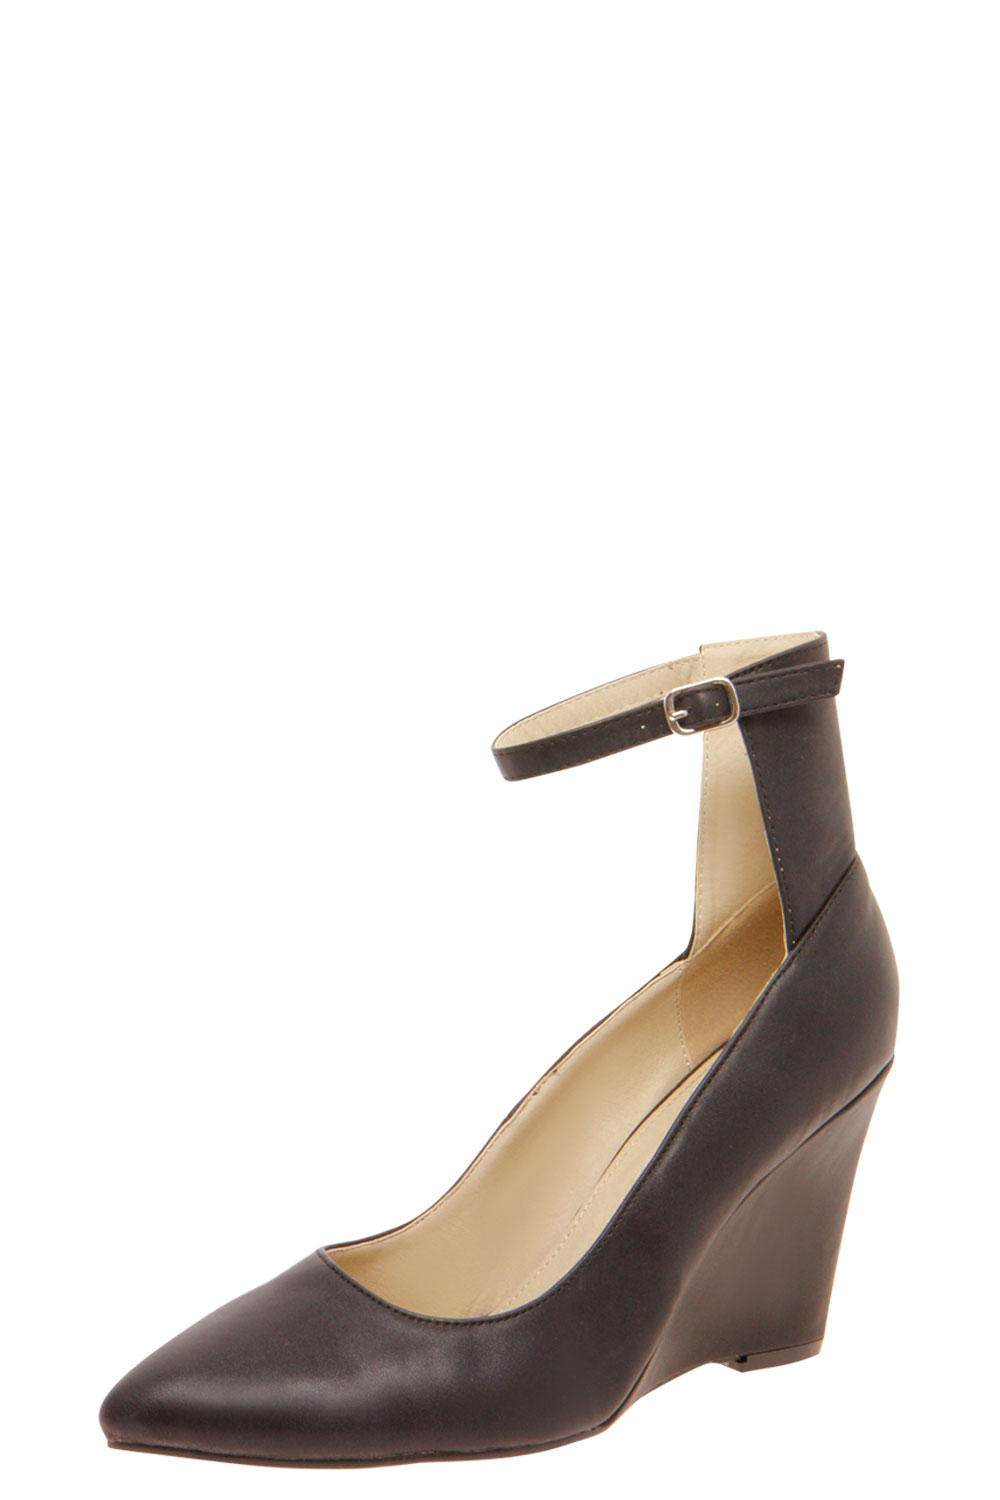 boohoo zarah ankle mid pointed wedge shoes in black